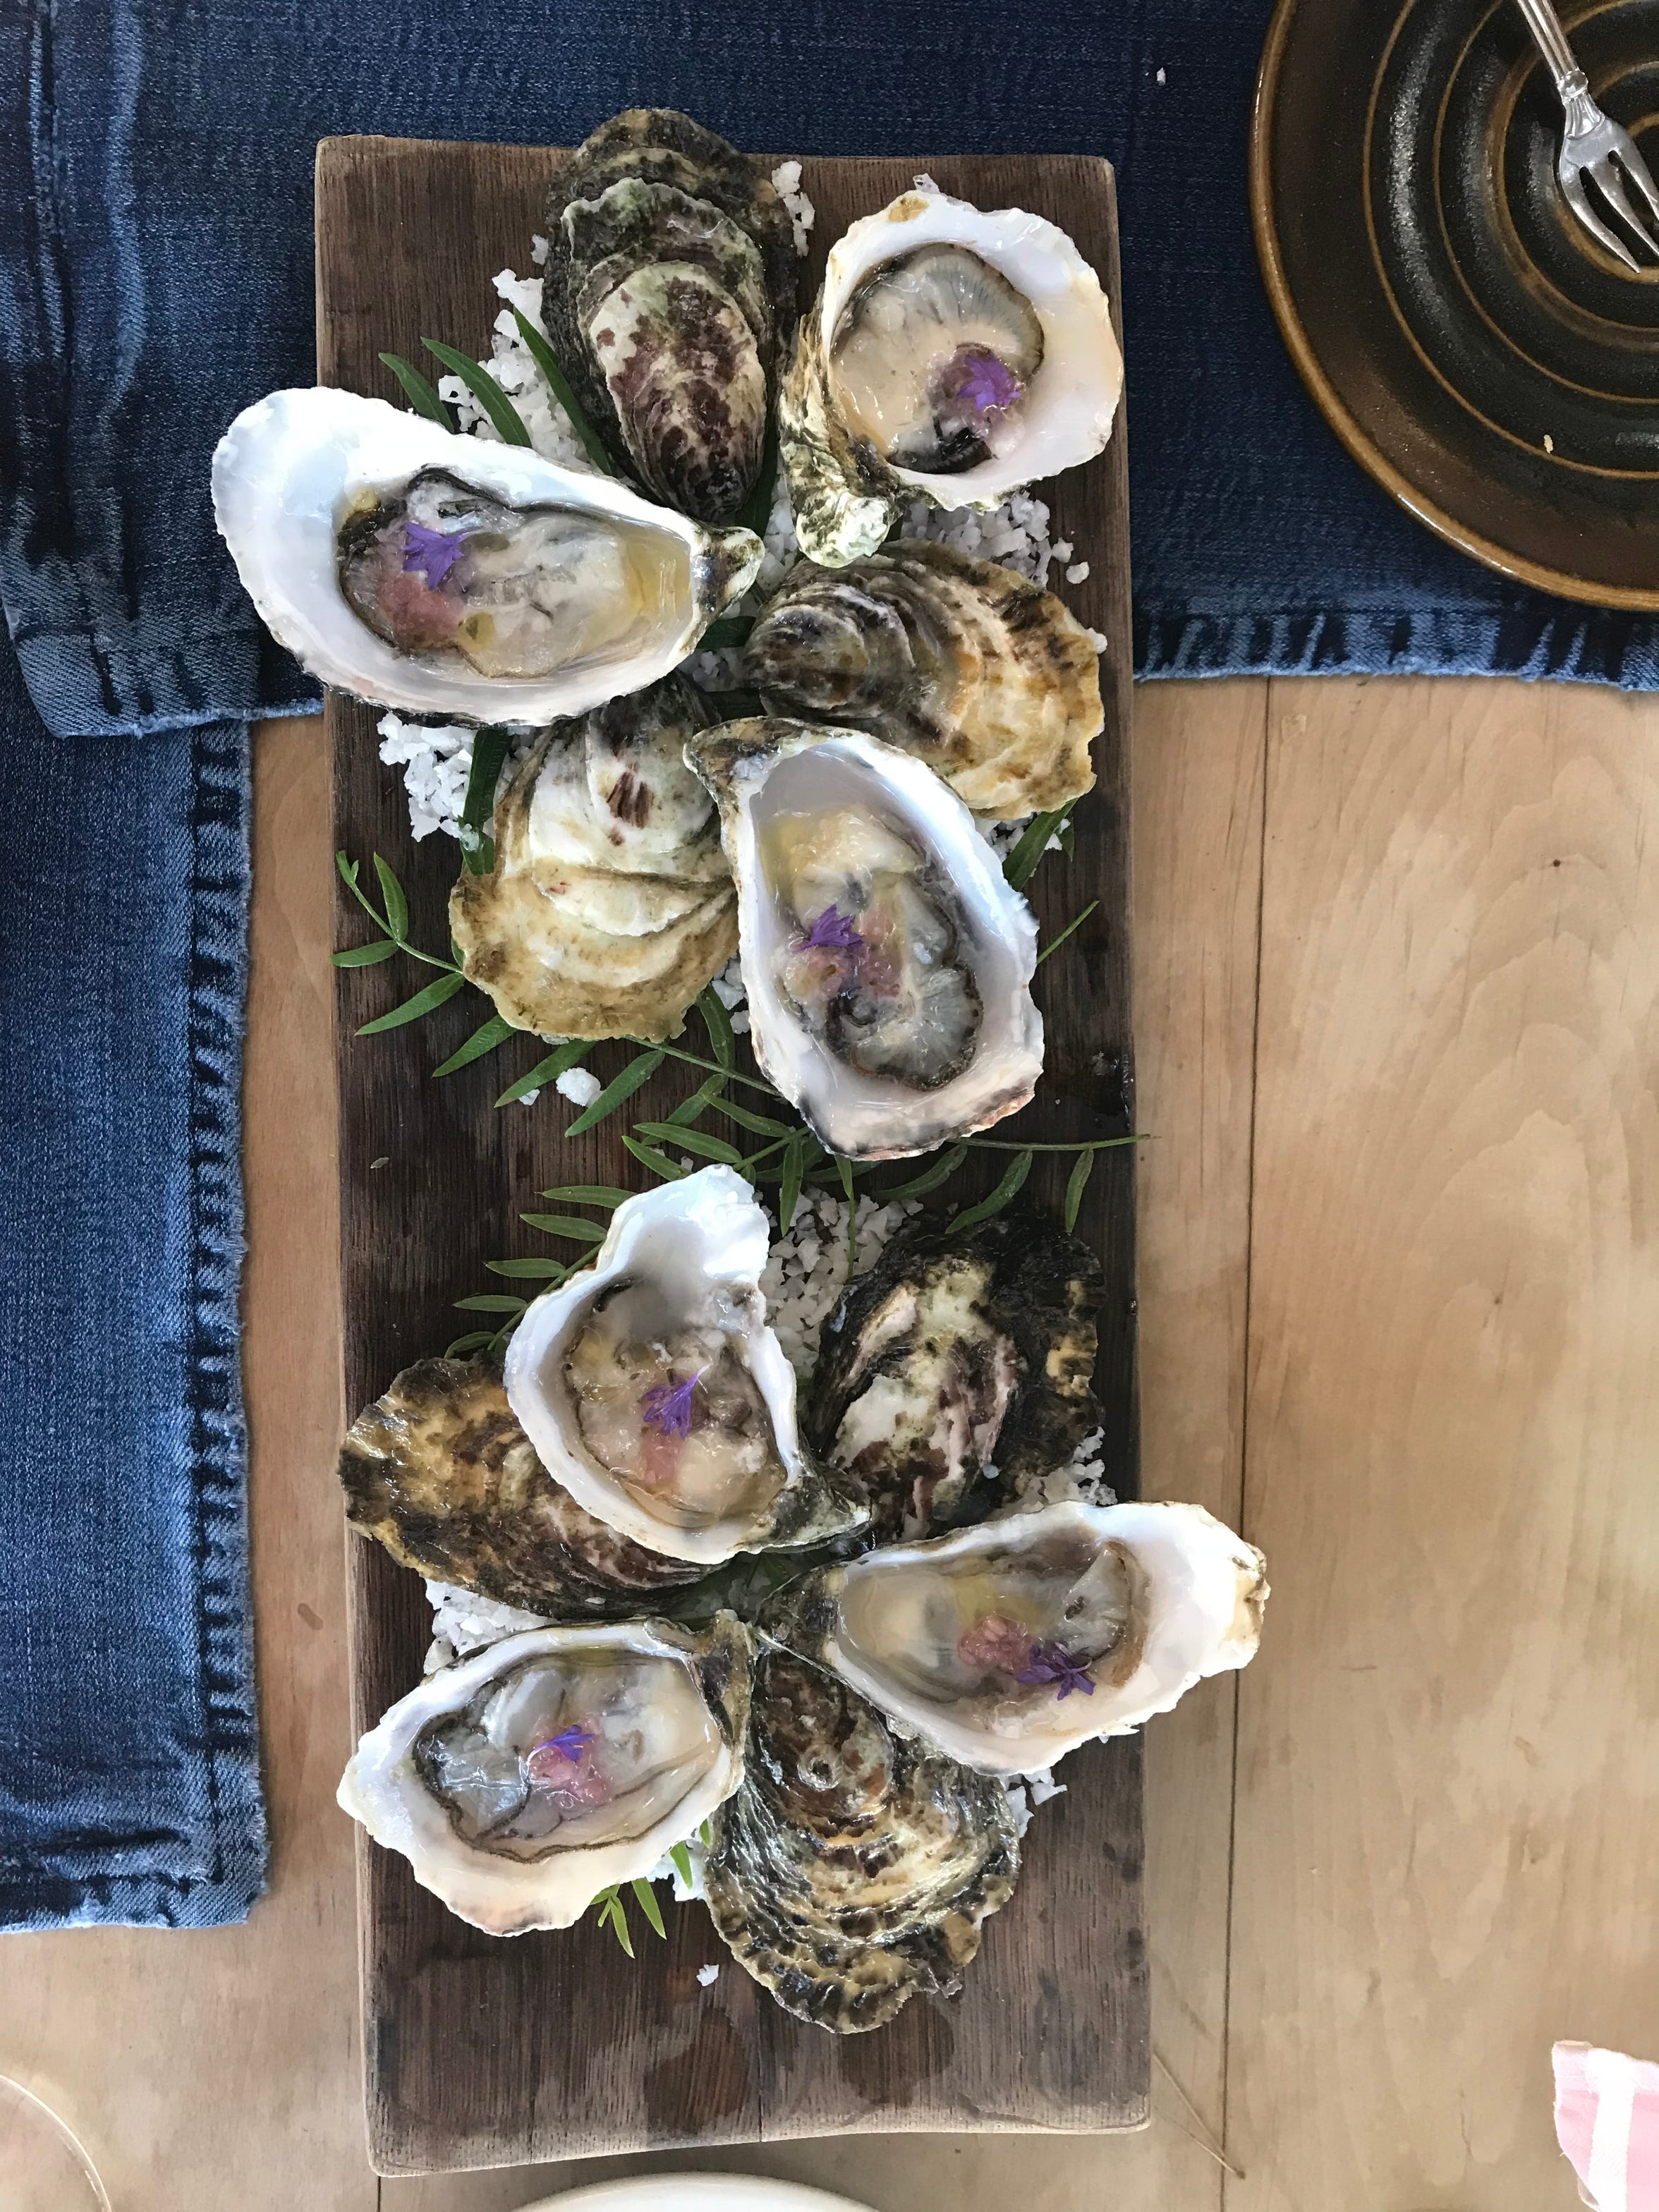 Oysters at Deckman's en el Mogor in Baja's Guadalupe Valley